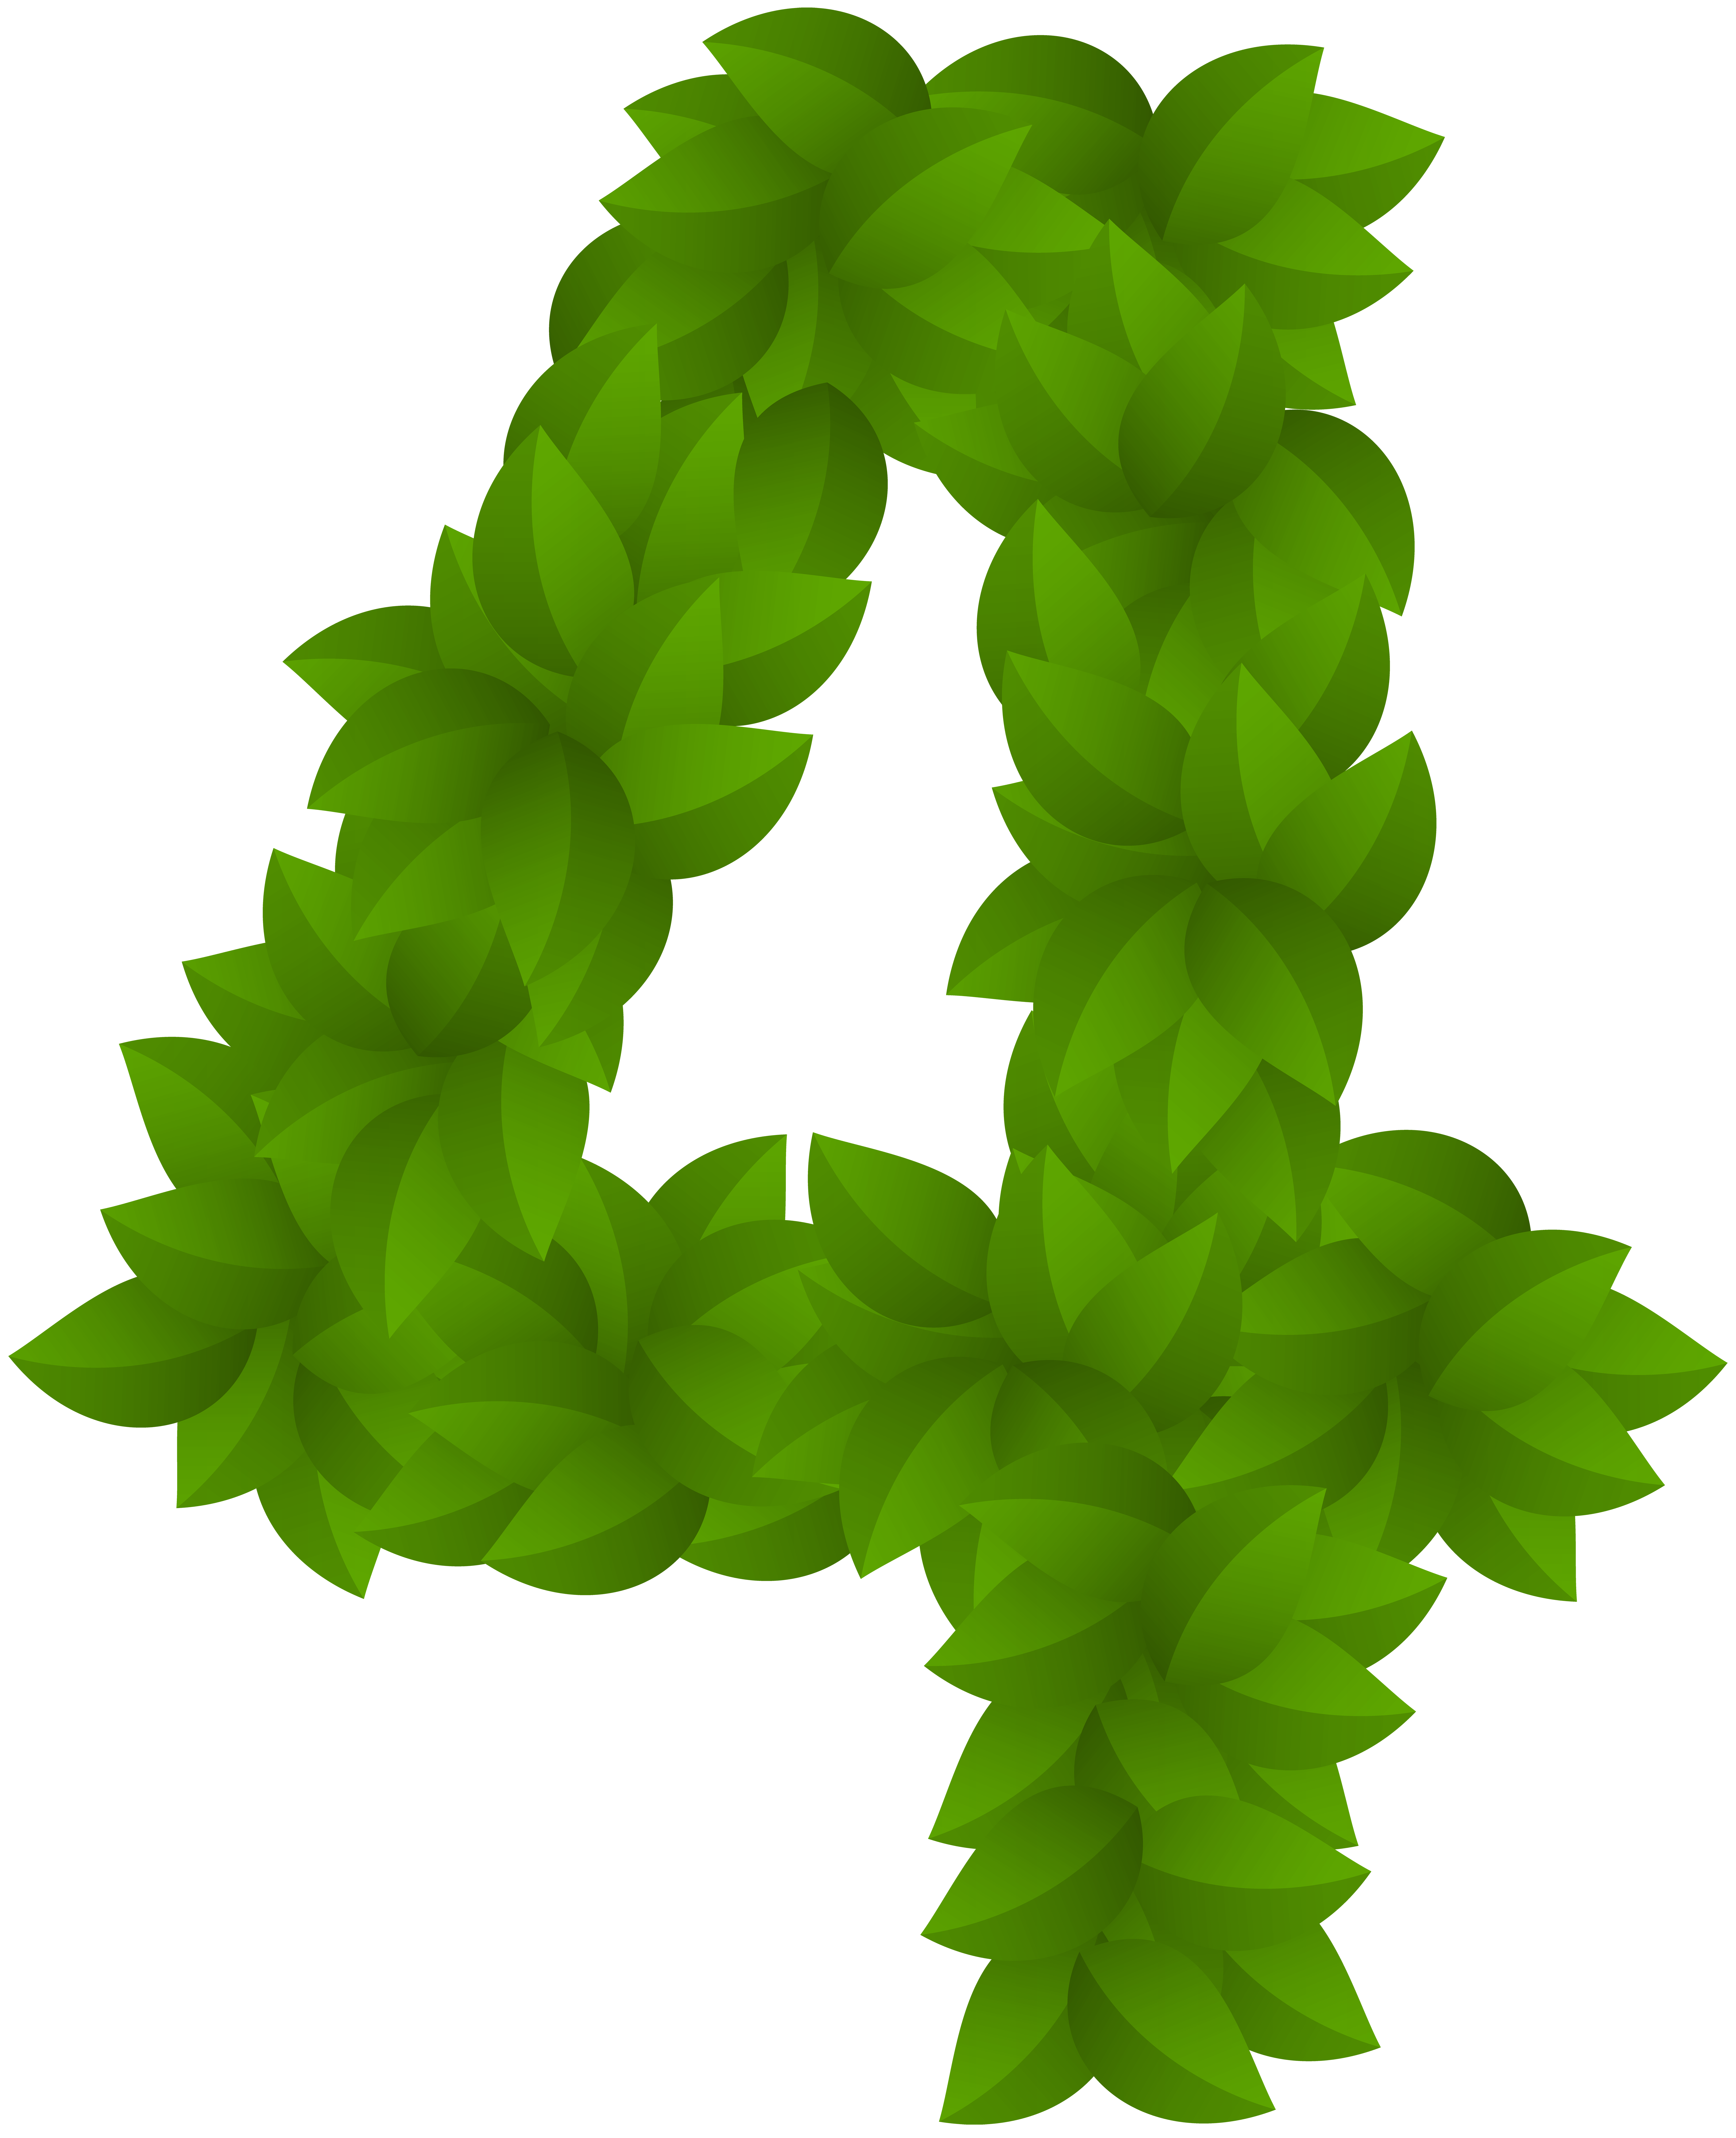 Leaf number four png. 4 clipart green